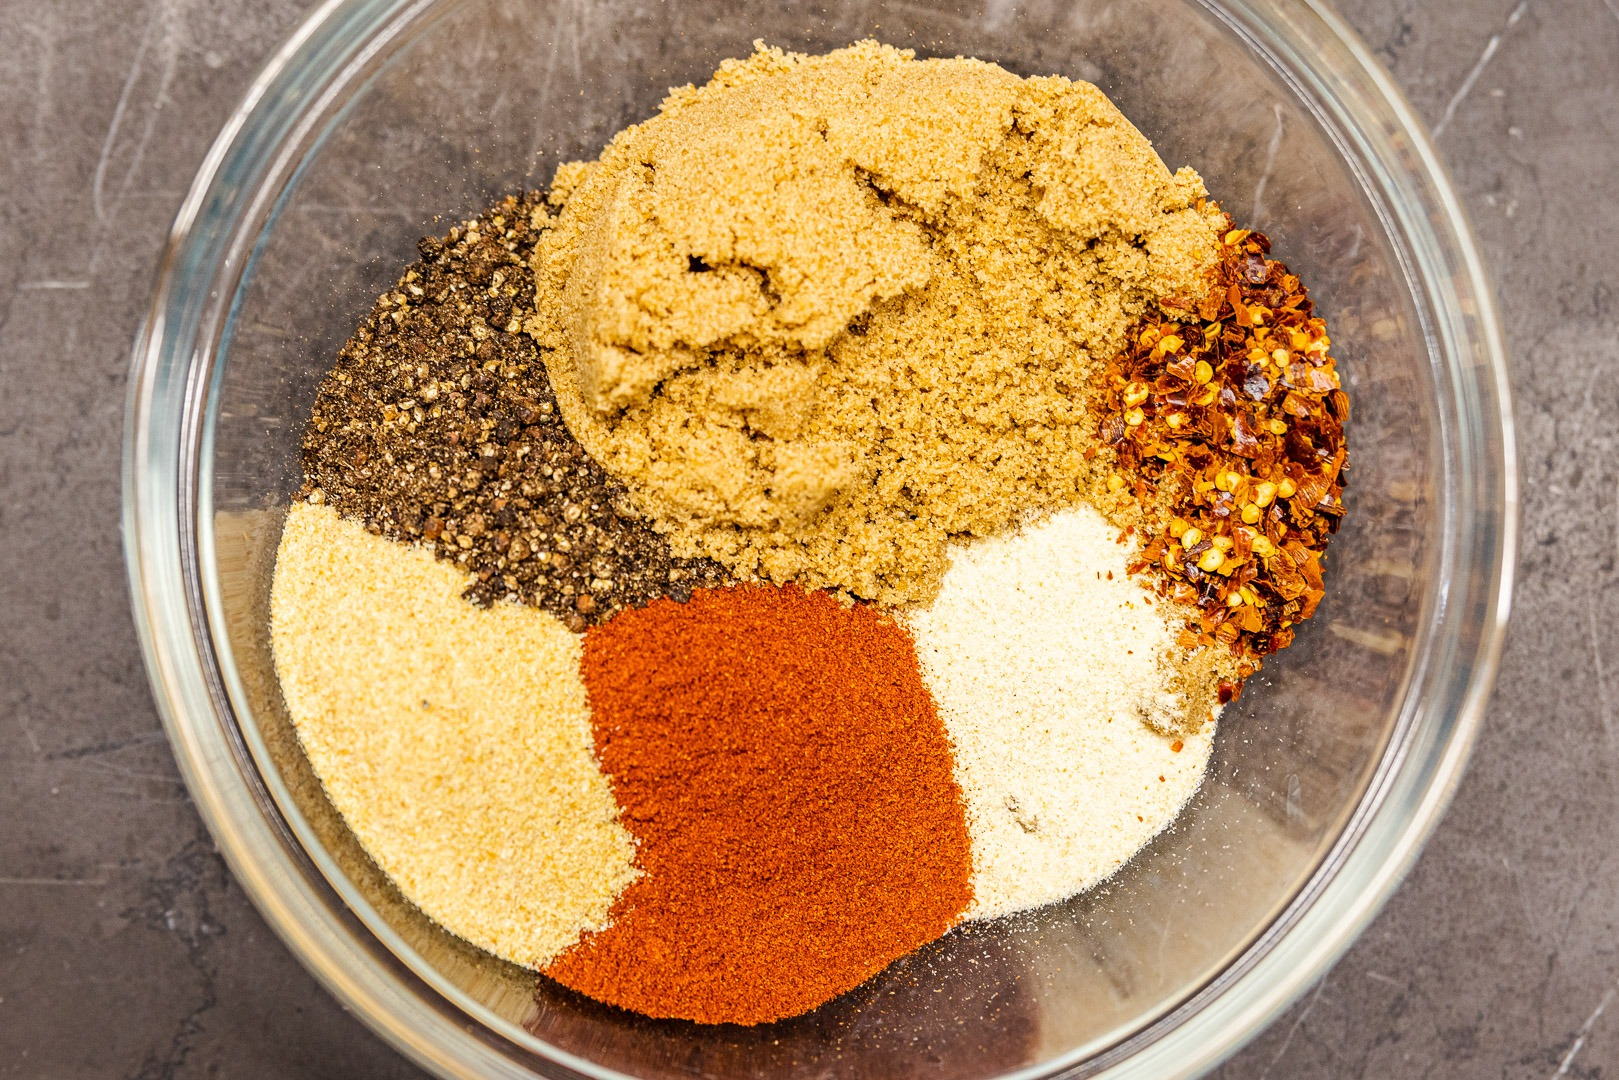 Other spices for the rub